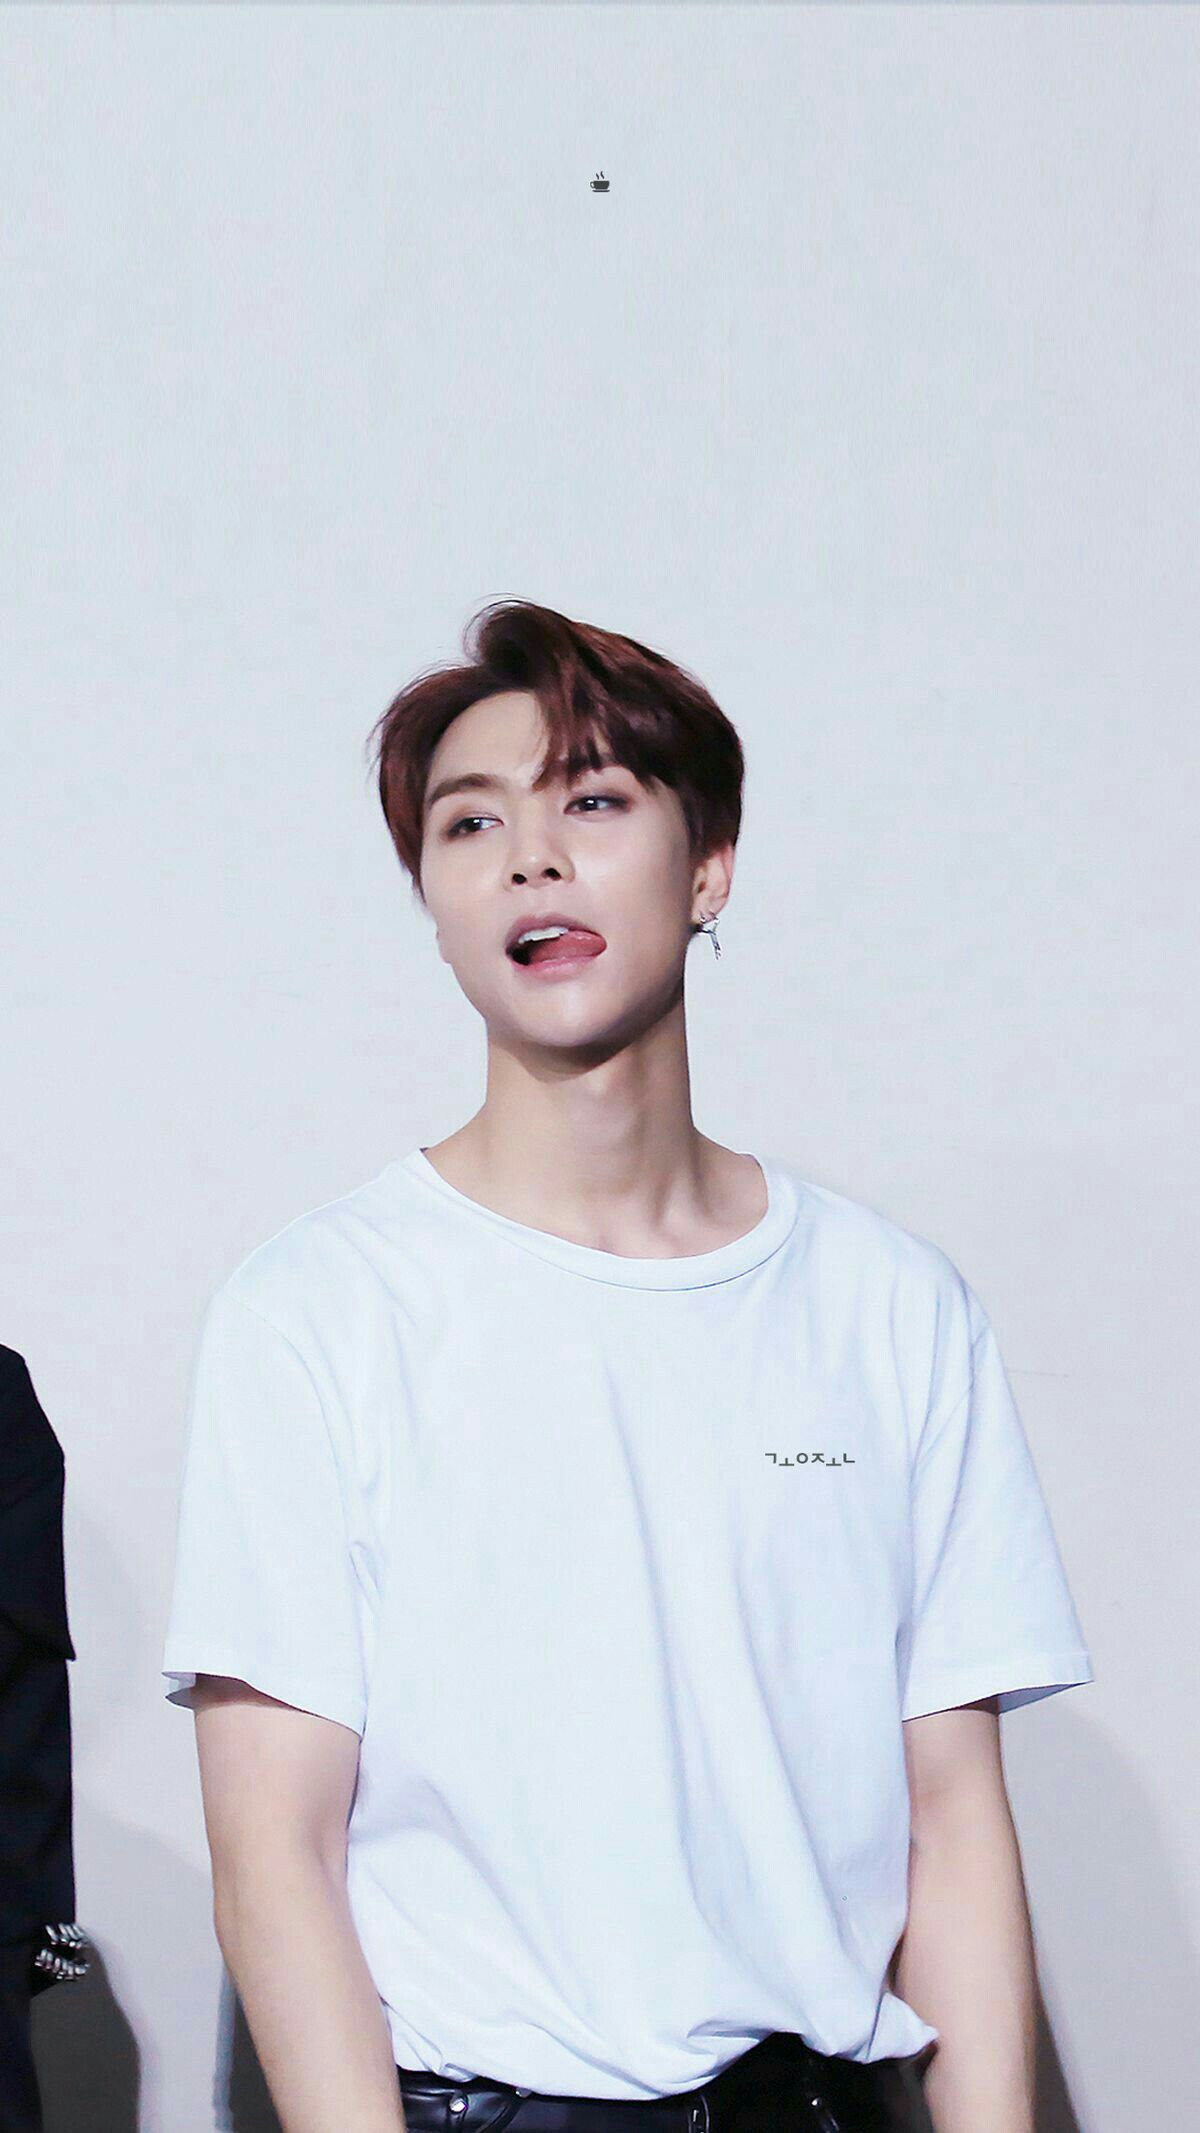 put your tongue back in your mouth johnny that's illEGAL ...